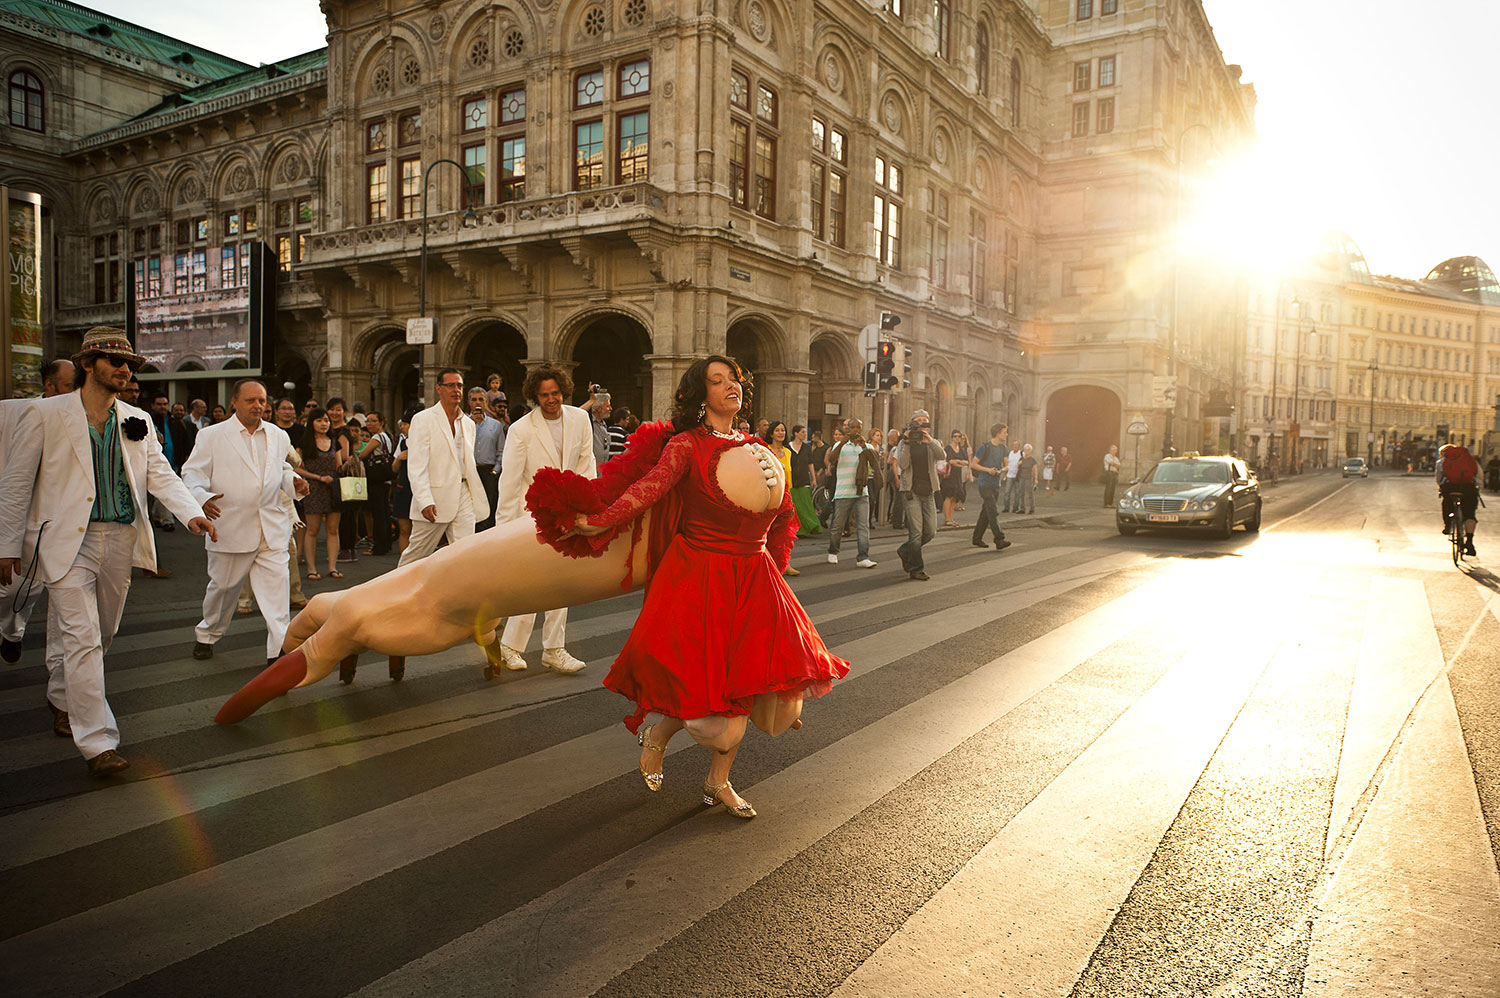 THE UTTERLY DANGEROUS MAN-EATING DIVA TAKING ON THE STREETS OF VIENNA